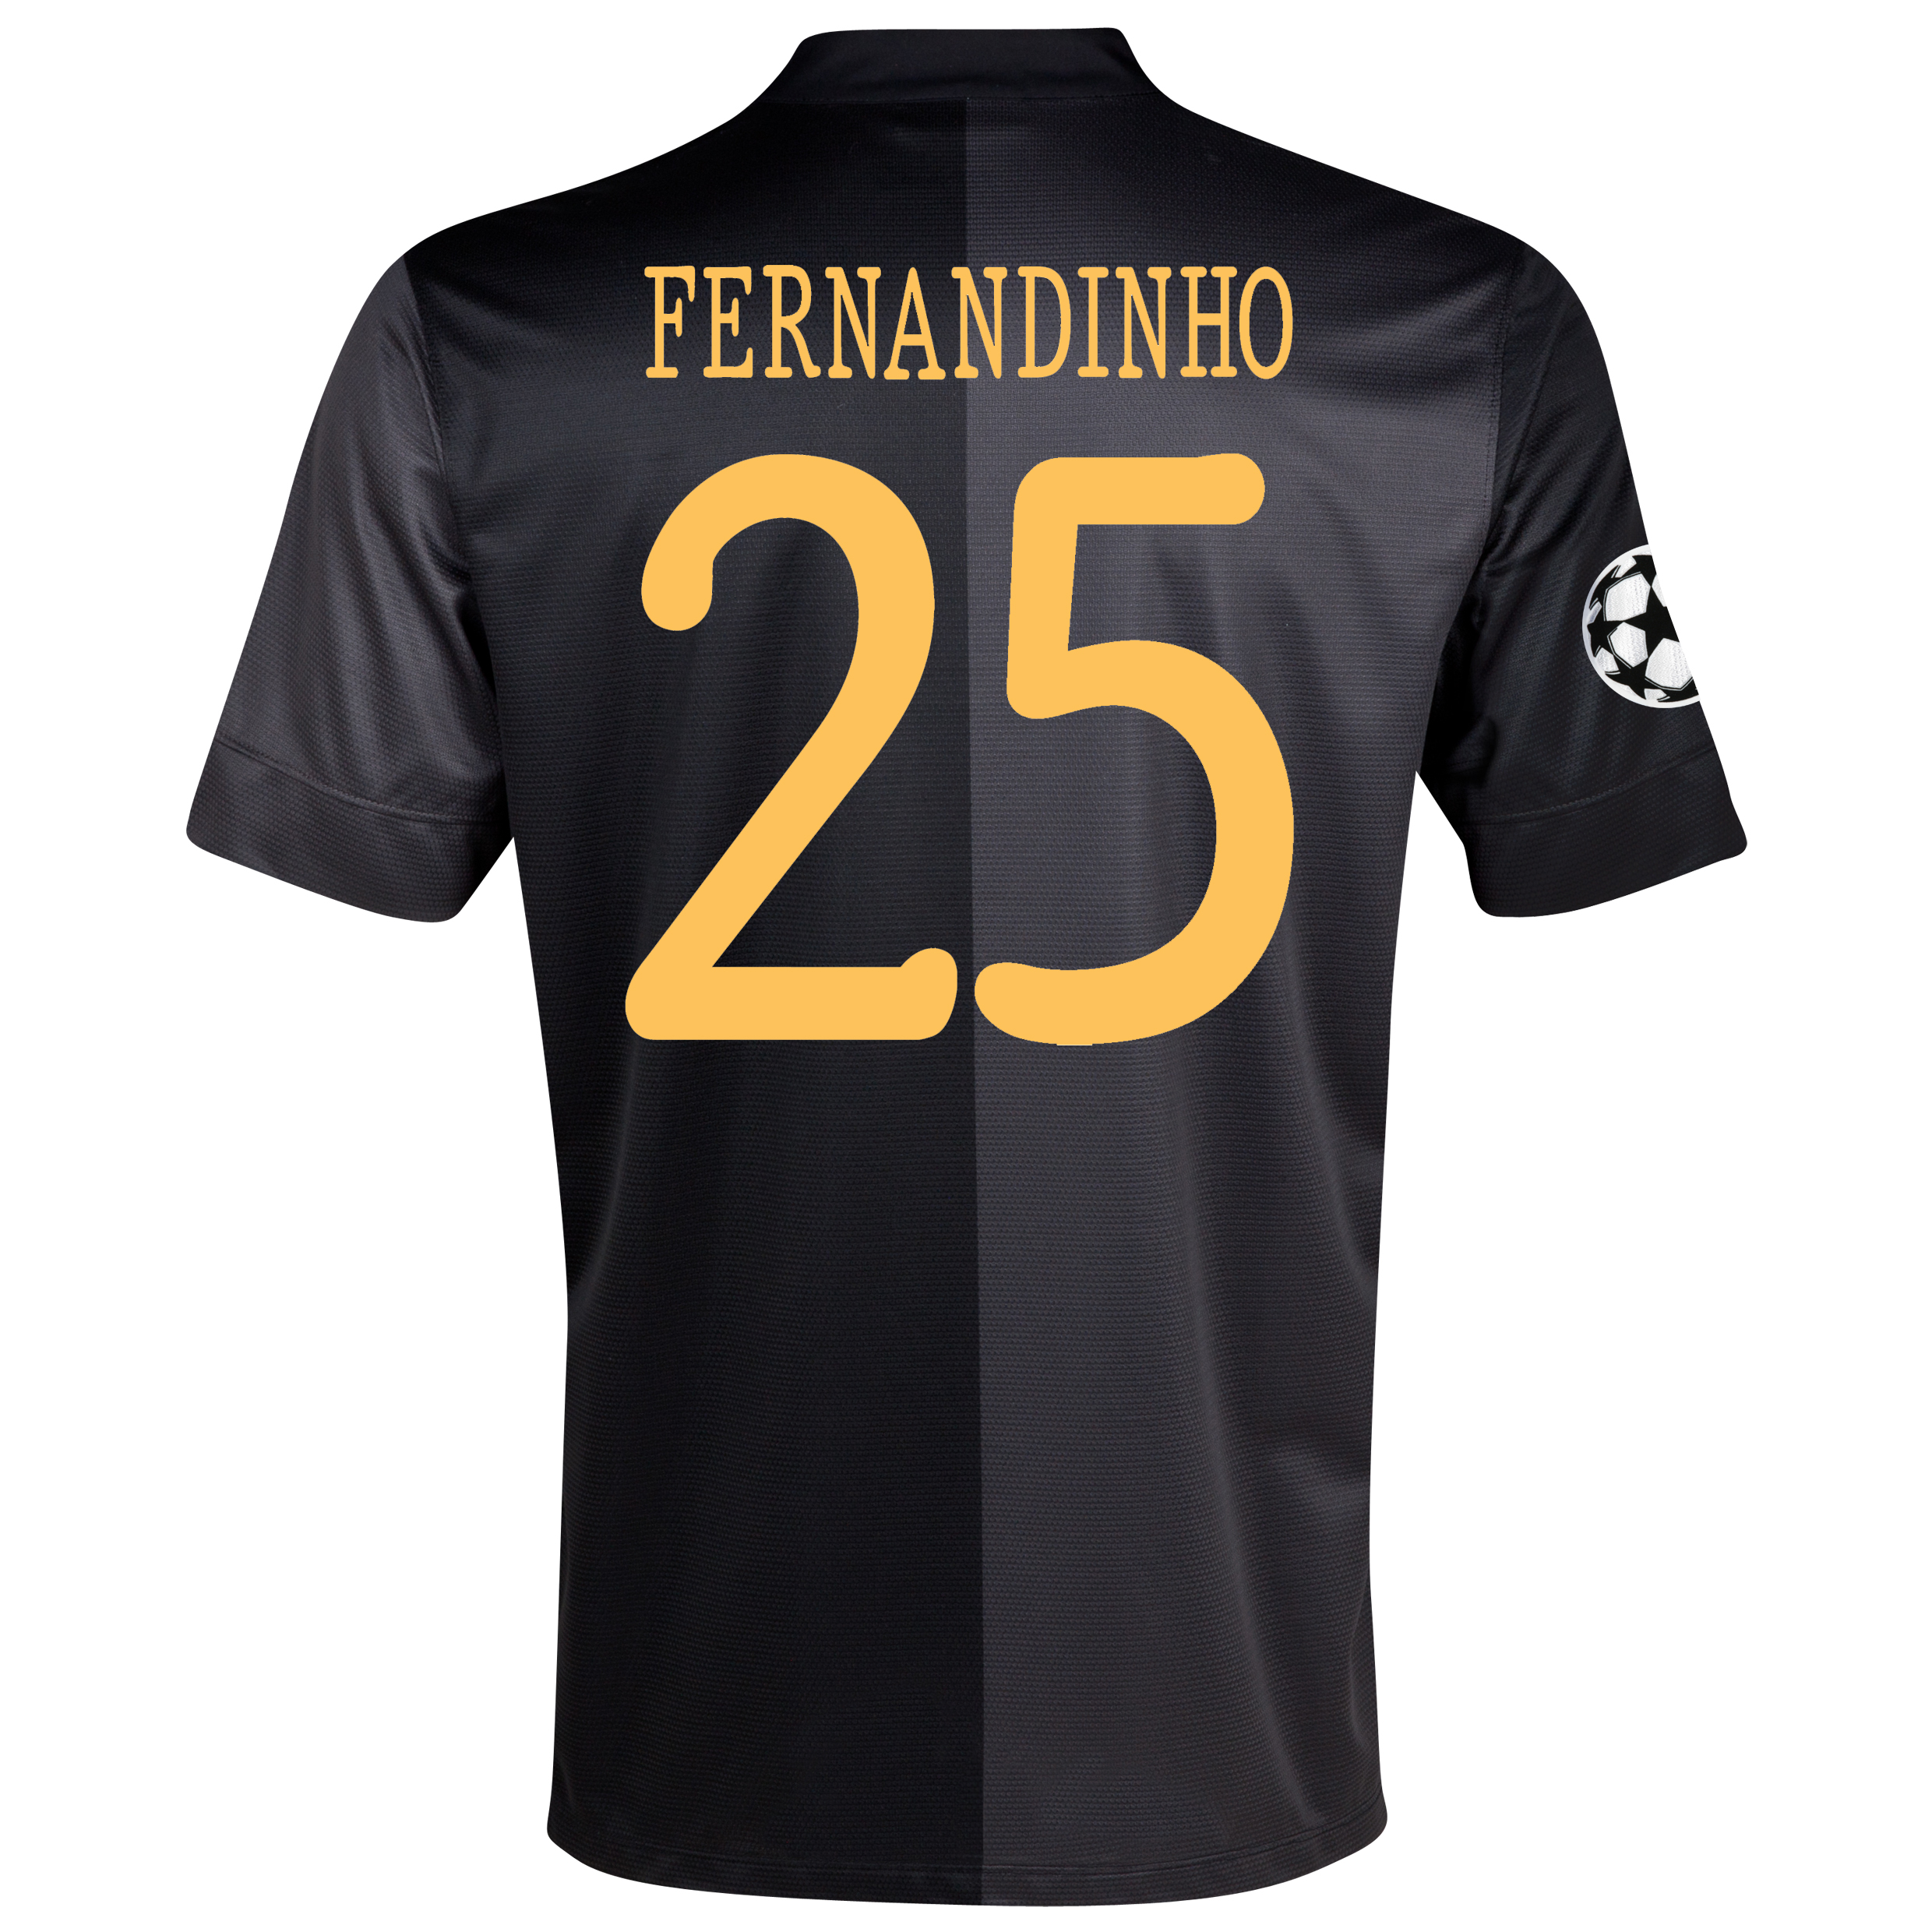 Manchester City UEFA Champions League Away Shirt 2013/14 - Junior with Fernandinho 25 printing